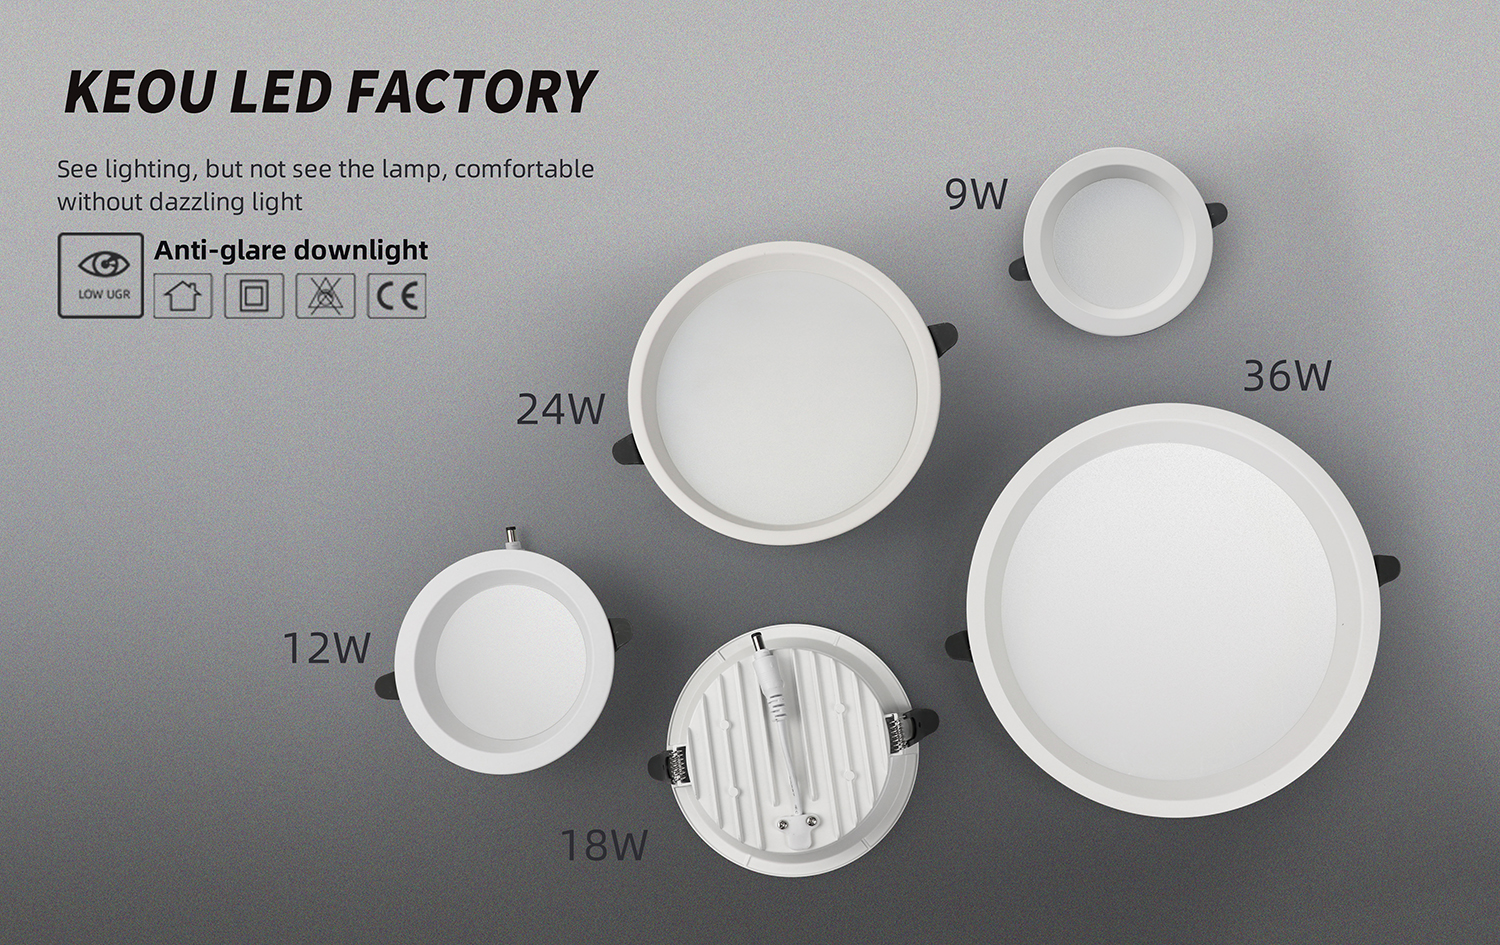 Downlight LED Factory- KEOU New LED Downlights